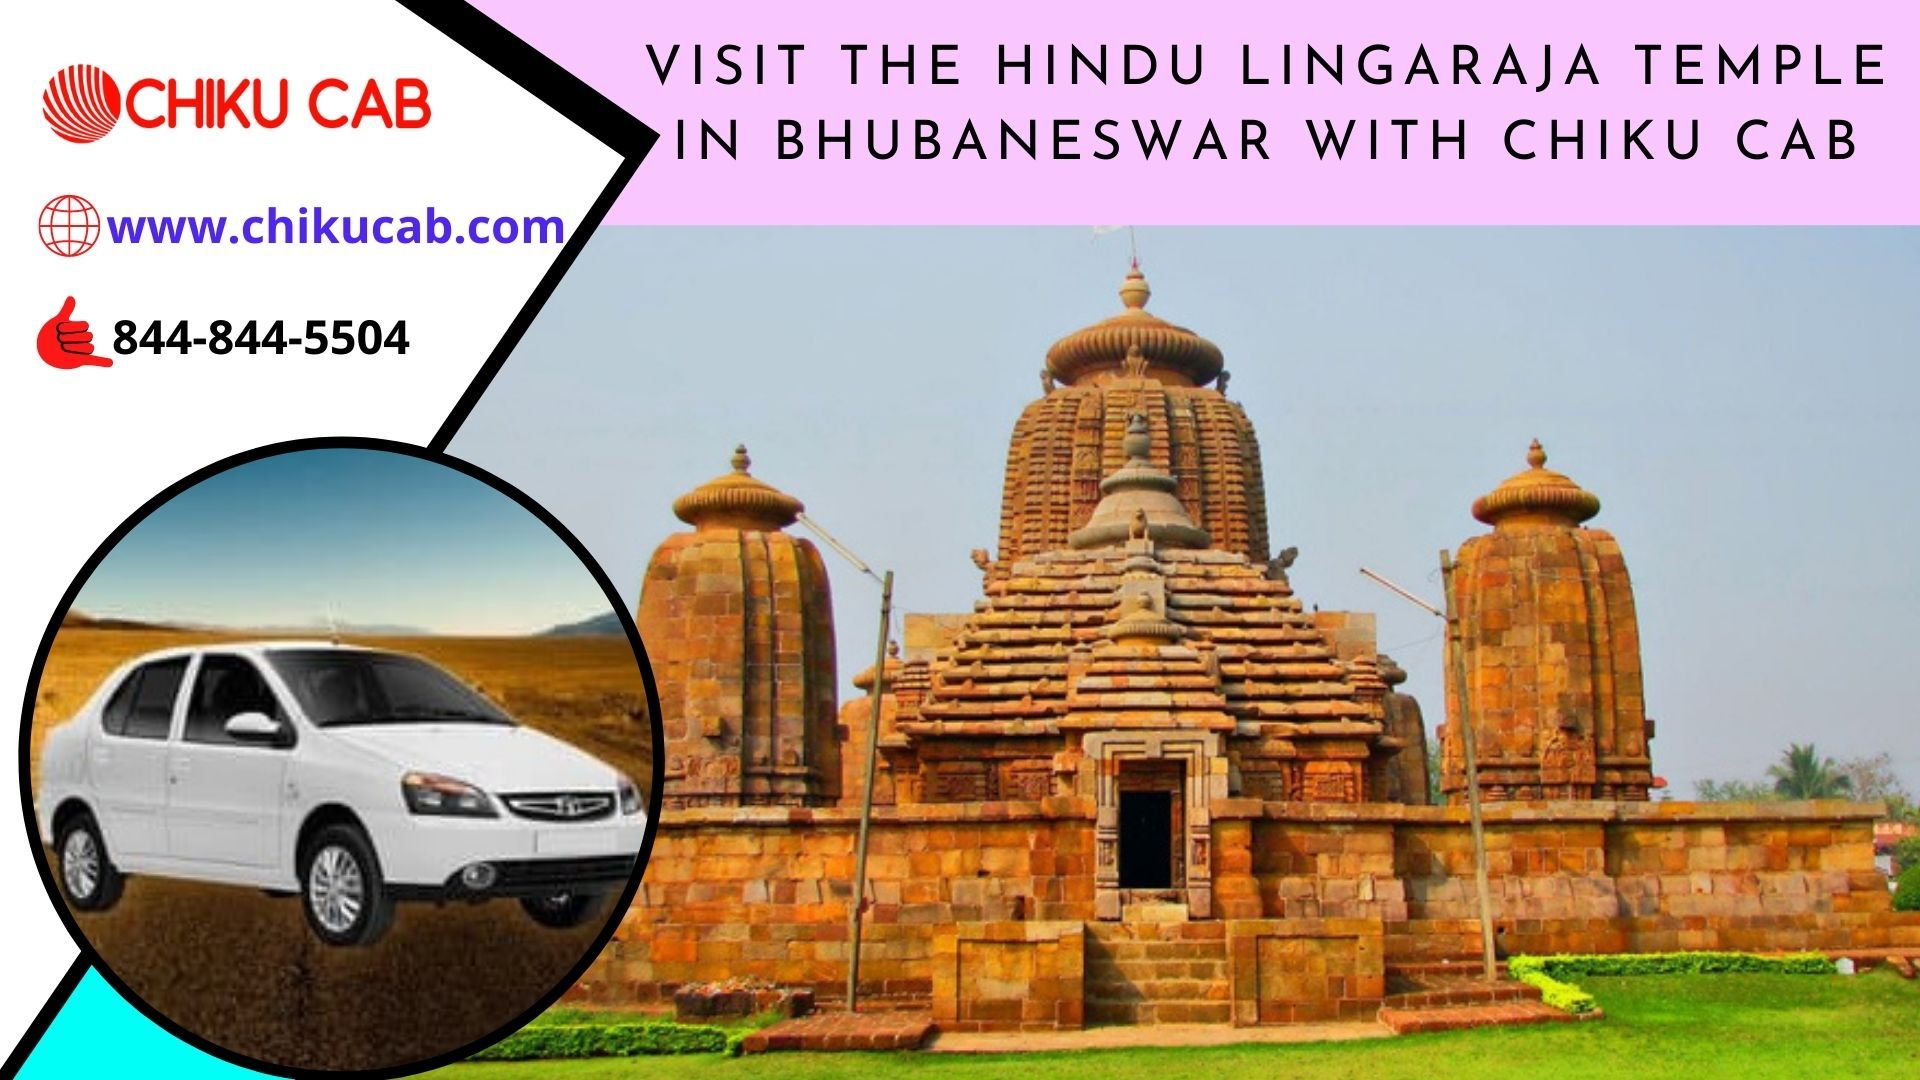 You can visit the #HinduLingarajaTemple with #ChikuCab #TaxiServiceinBhubaneswar at #affordable #rates. To #rent a #car in #Bhubaneswar, call us on 8448445504 or visit our website page.